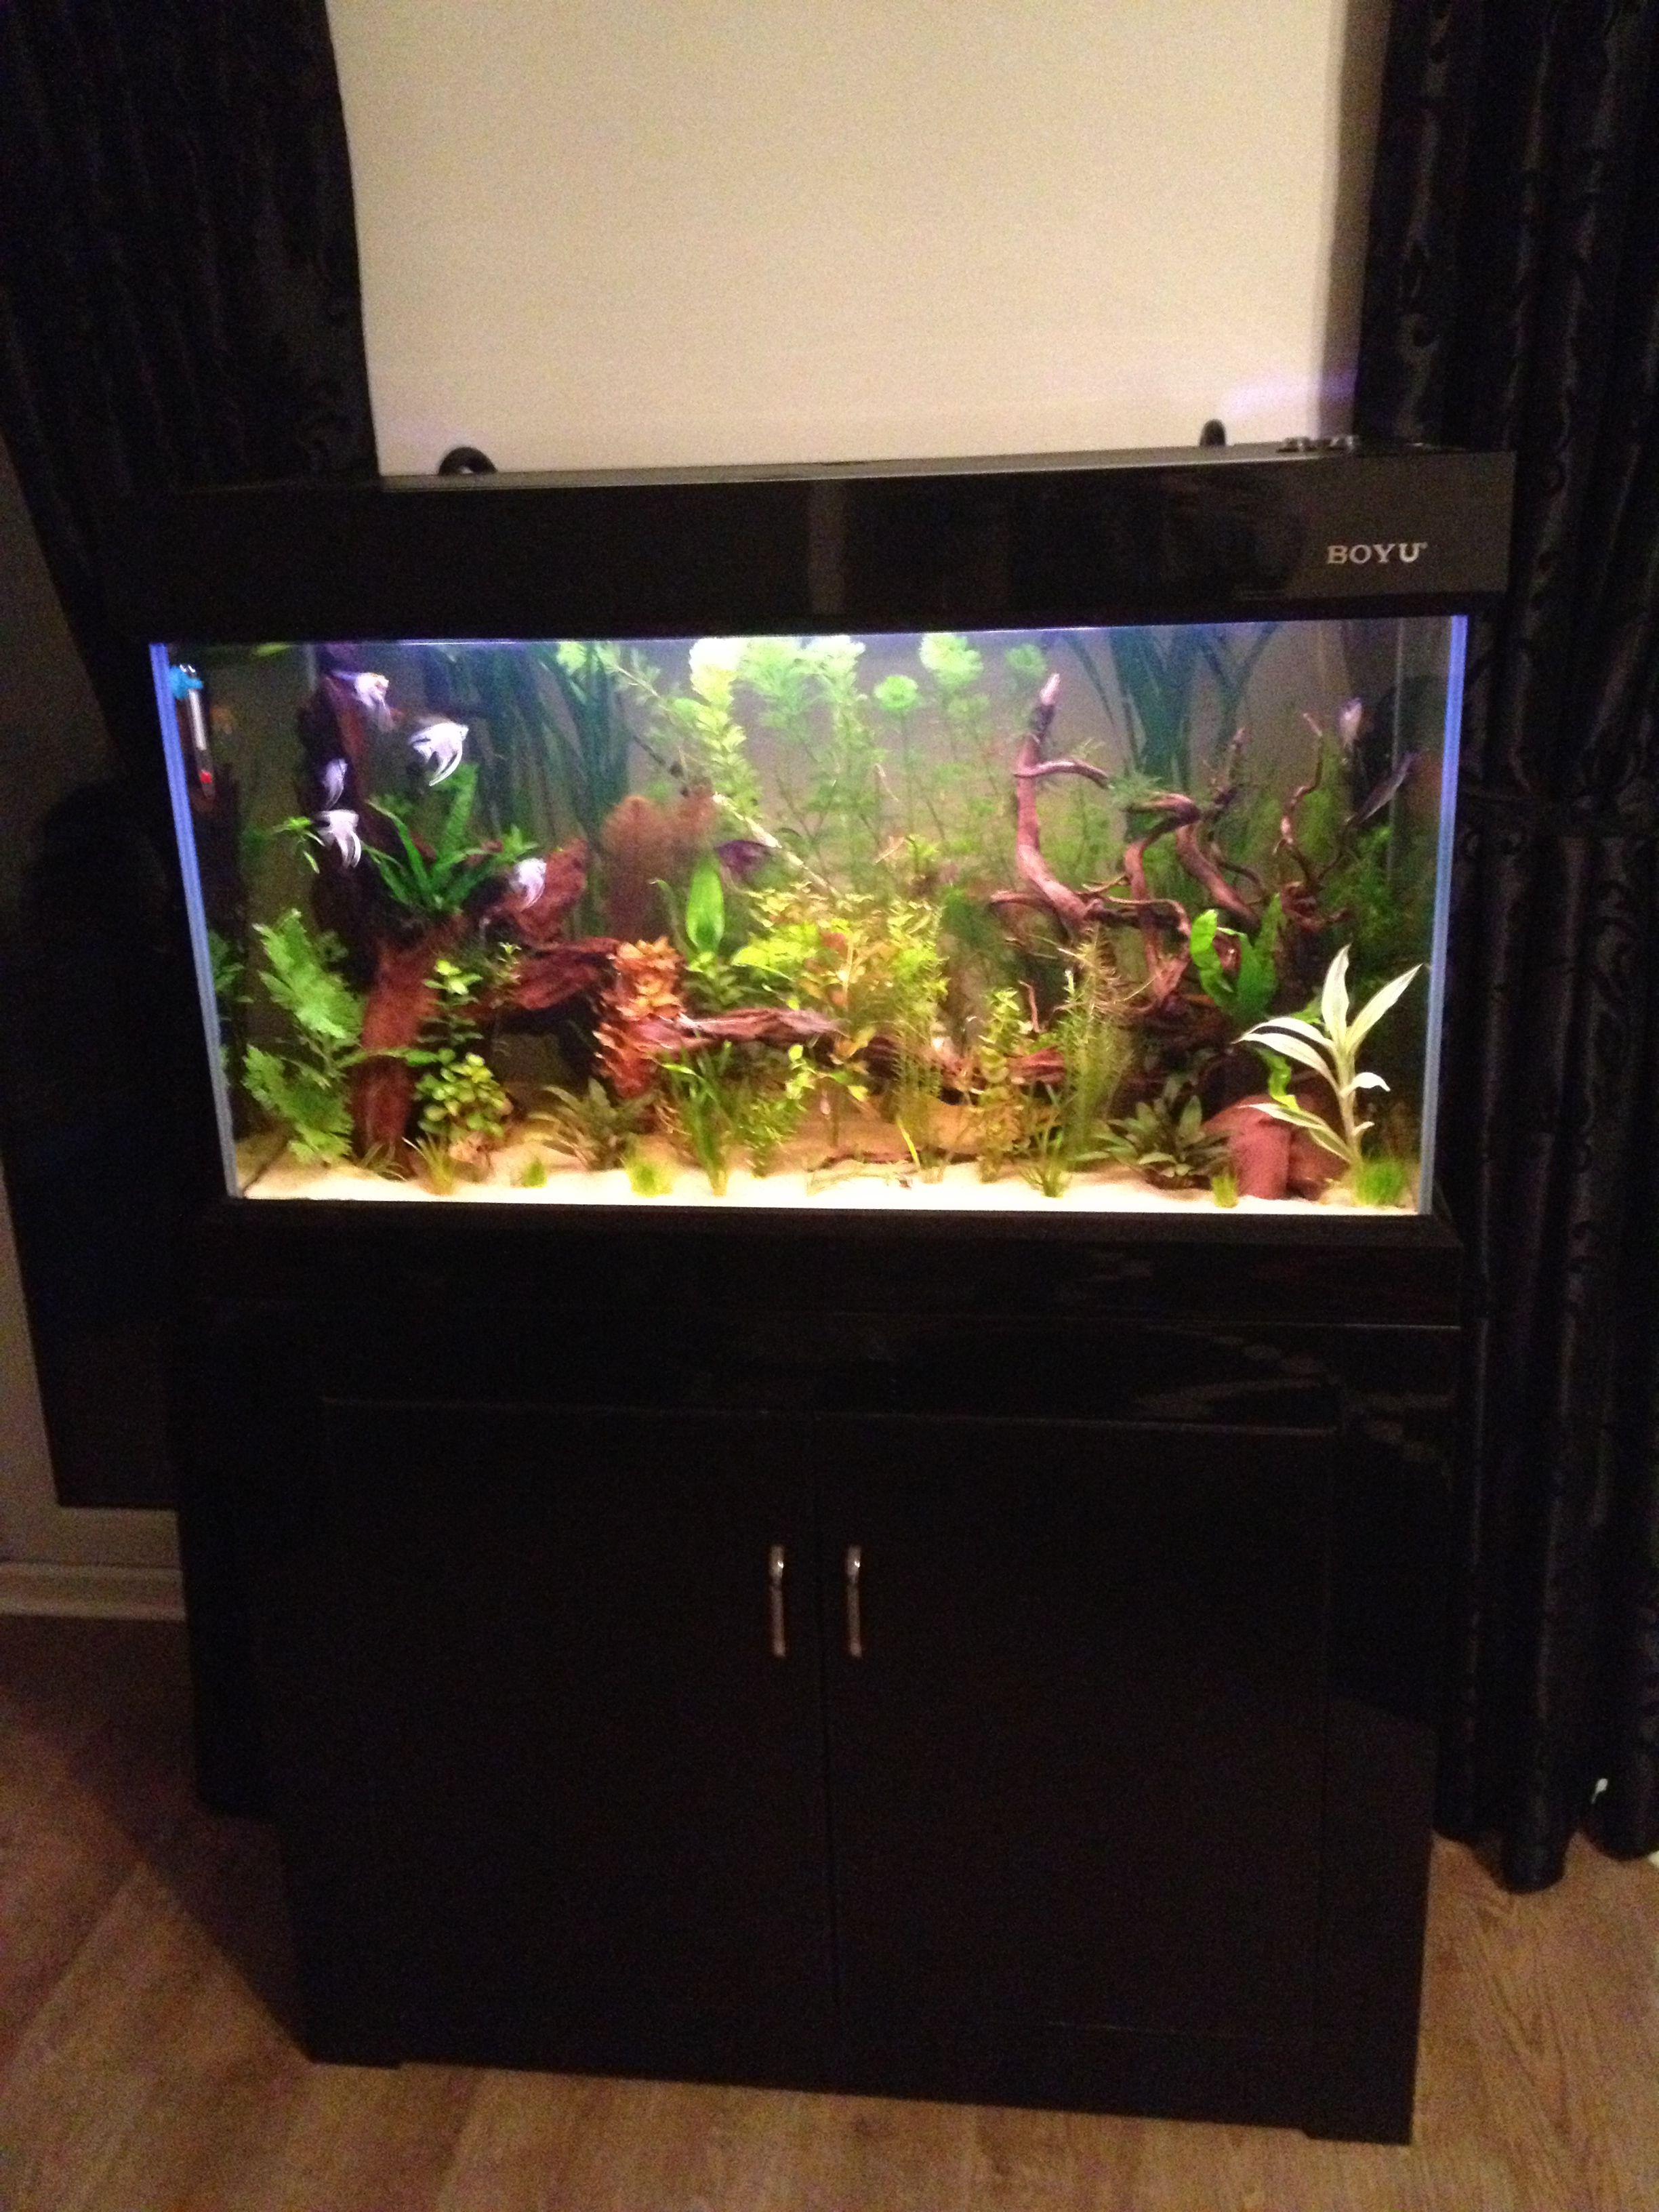 Cabinet aquarium fish tank tropical - Our Customer S Beautiful Boyu Fish Tank Http Www Allpondsolutions Co